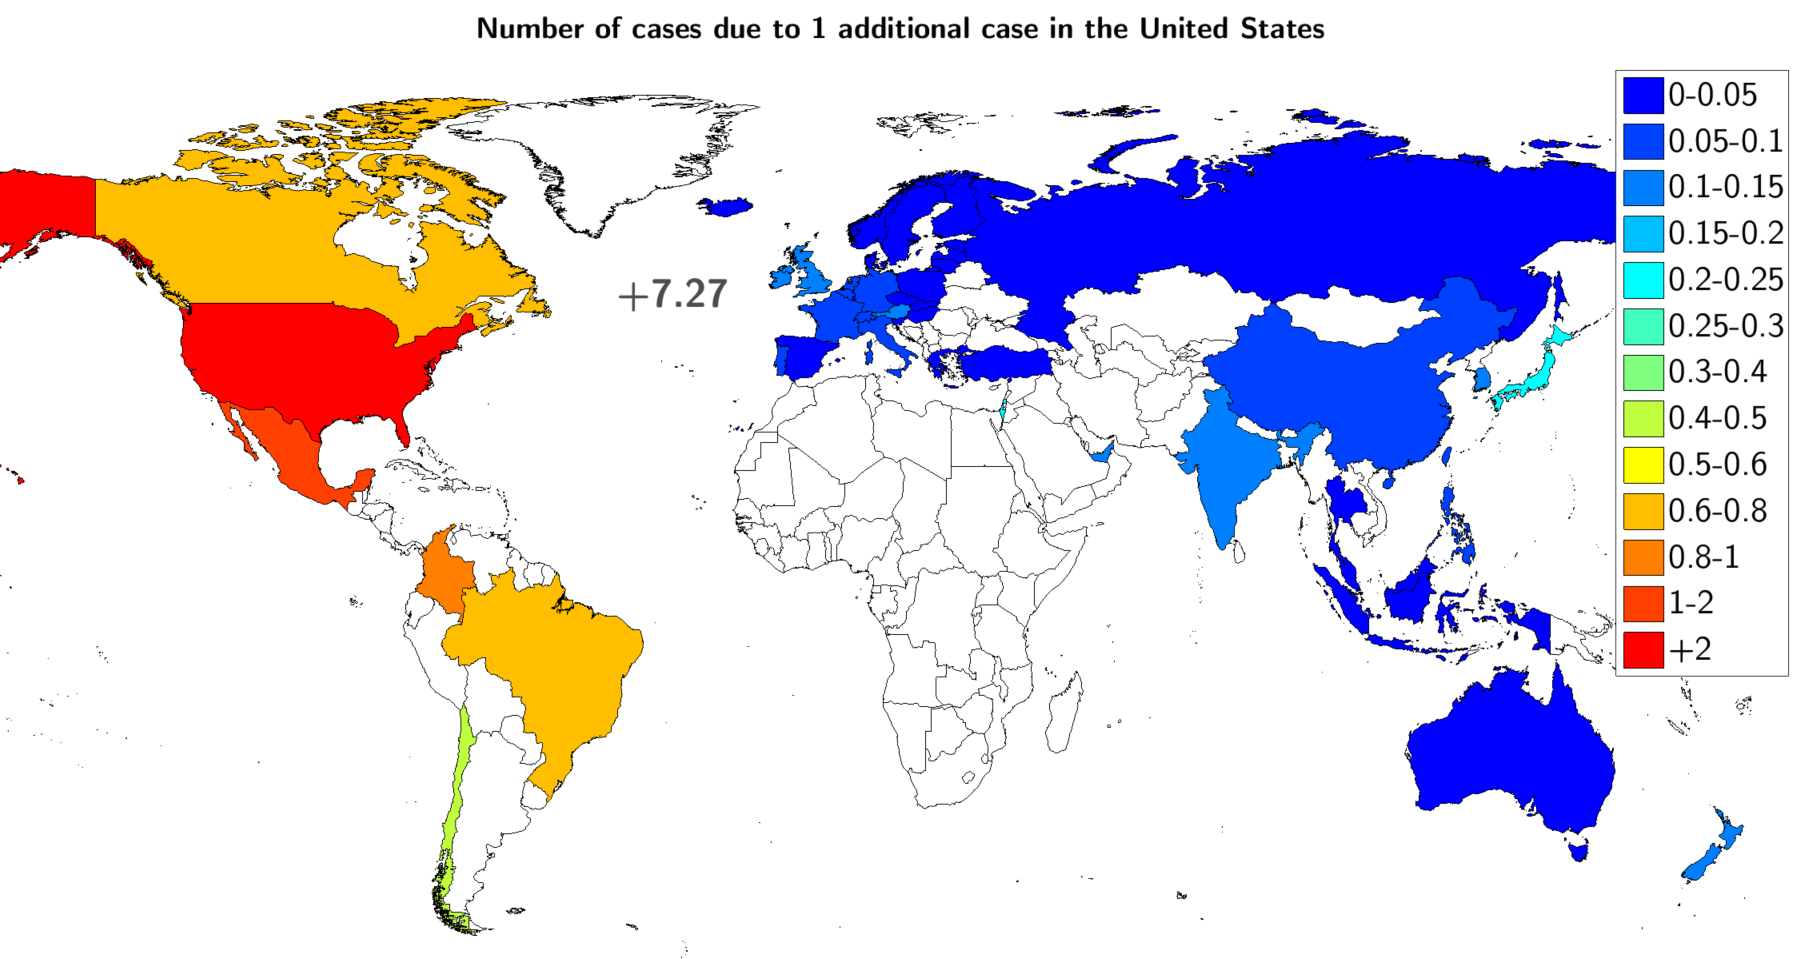 Air travel restrictions in a pandemic: Easy to implement, hard to assess 4